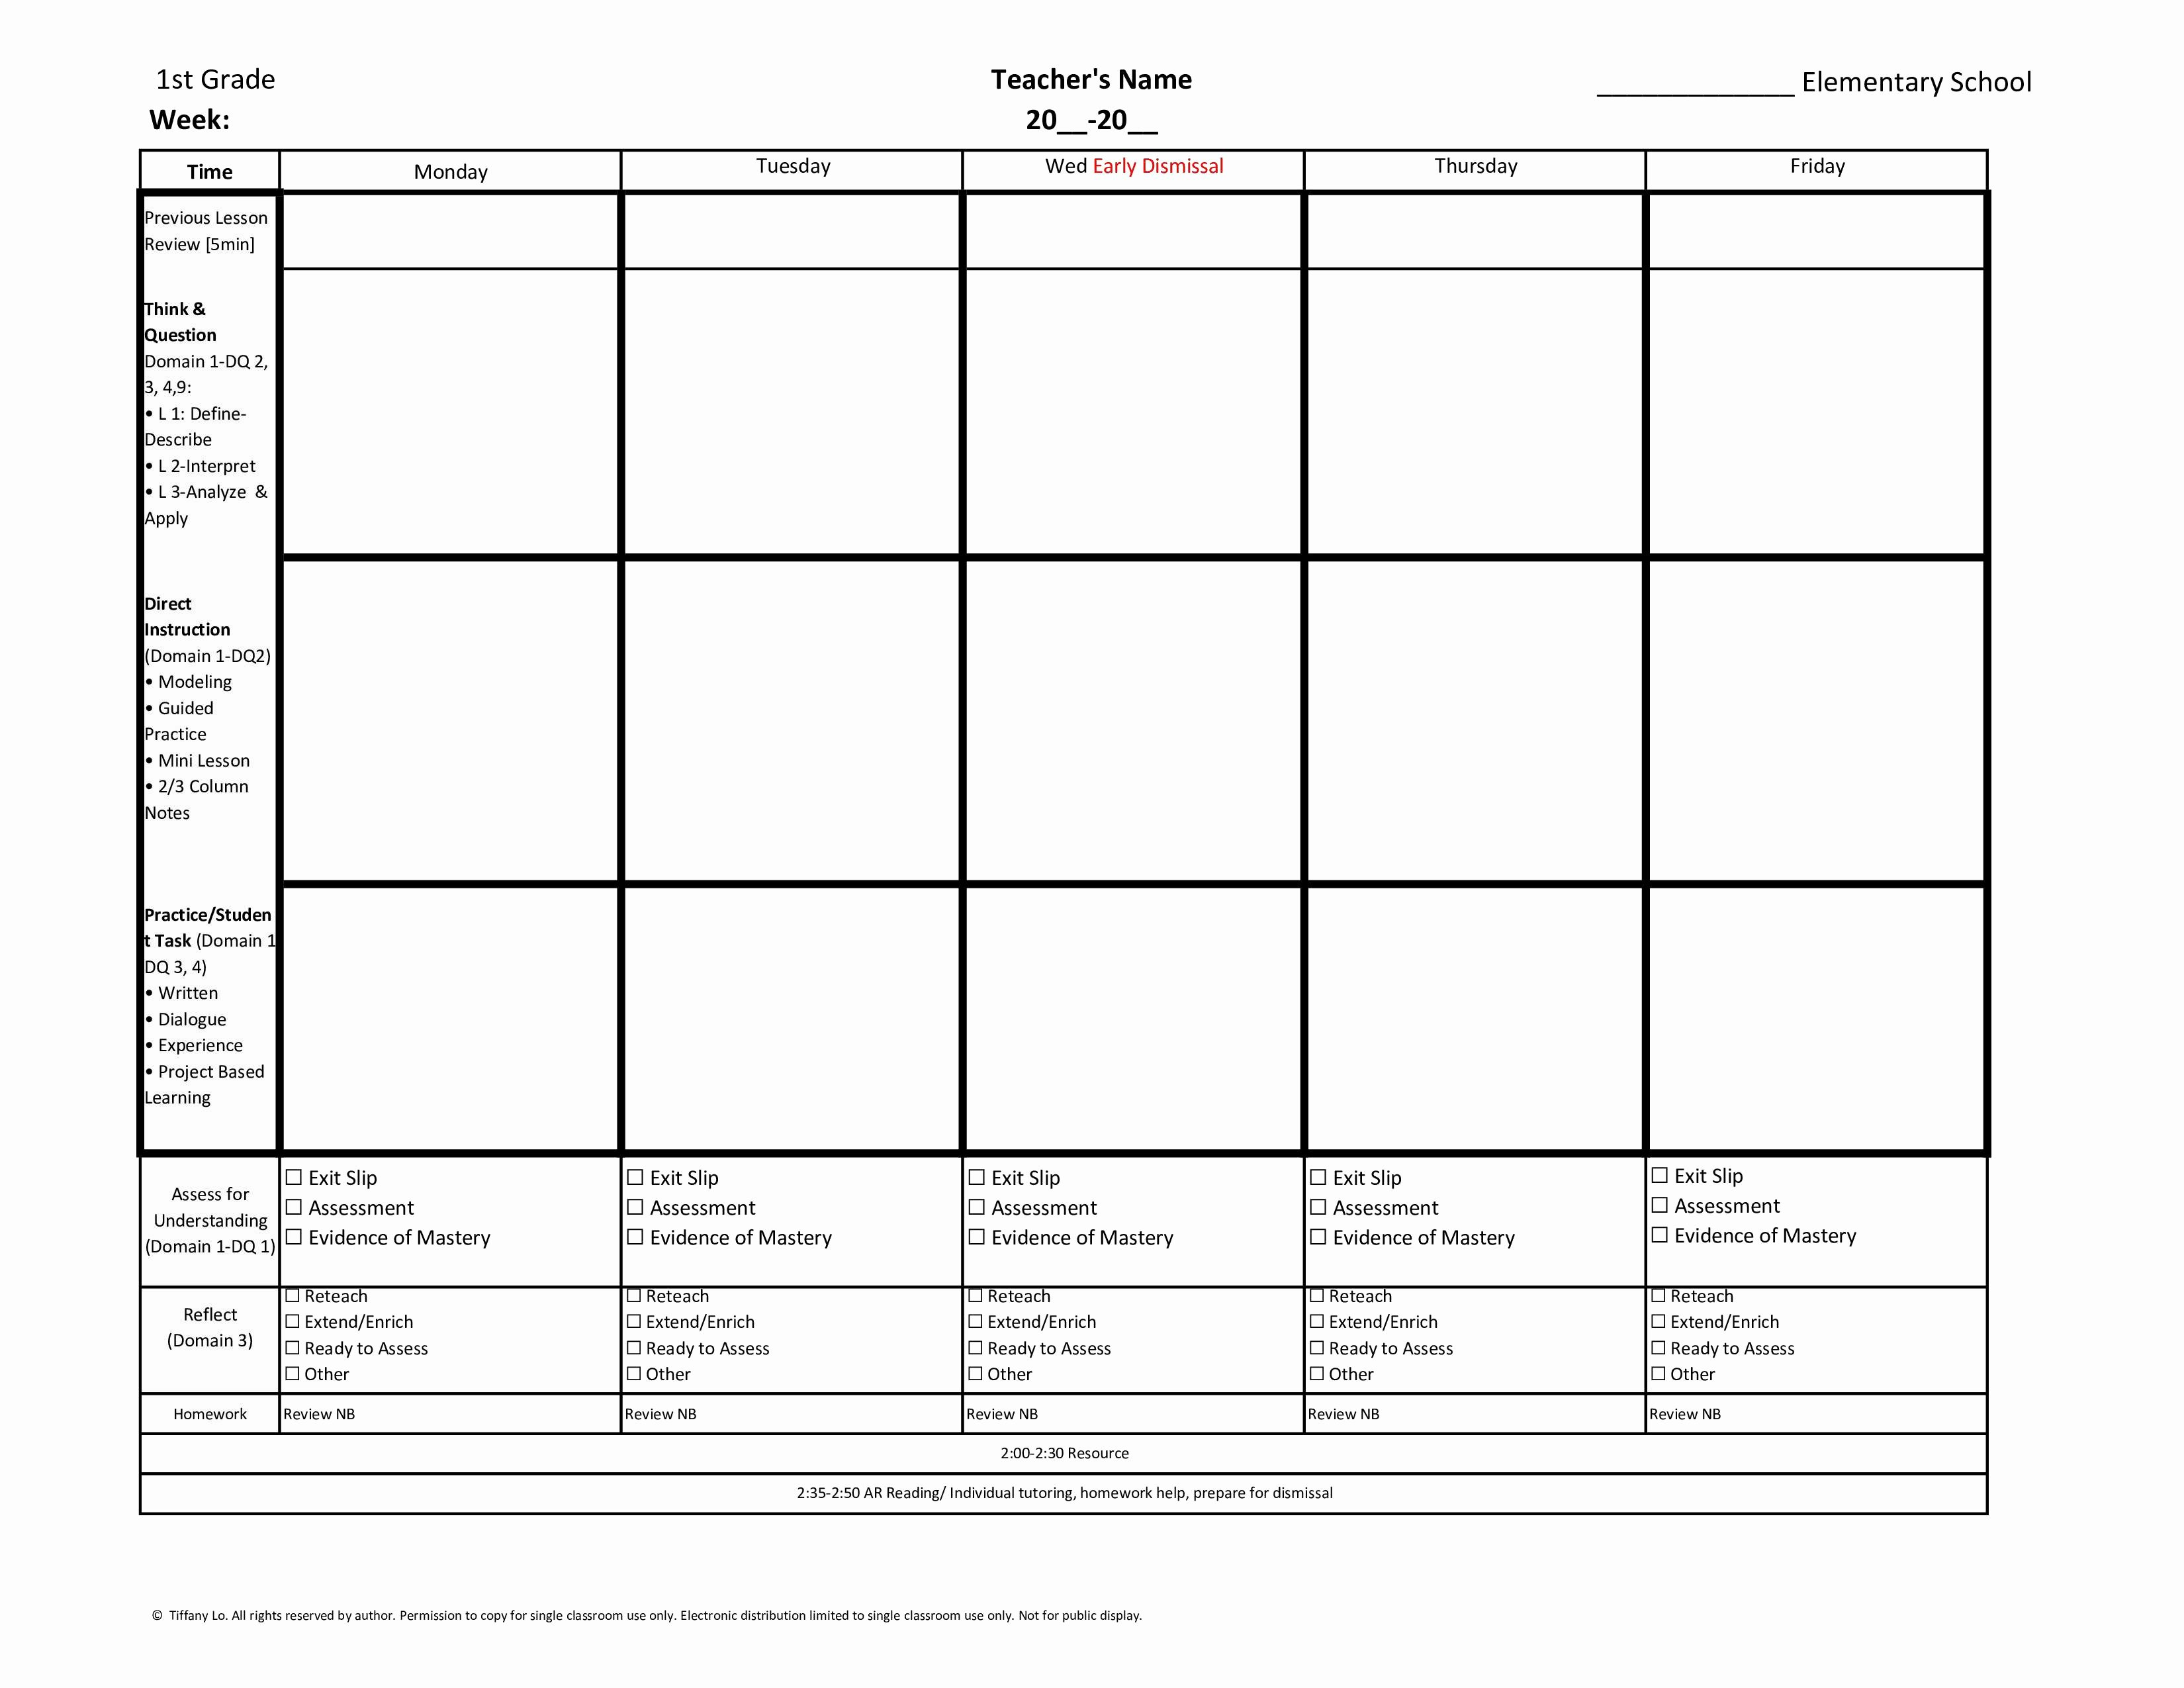 1st First Grade Mon Core Weekly Lesson Plan Template W